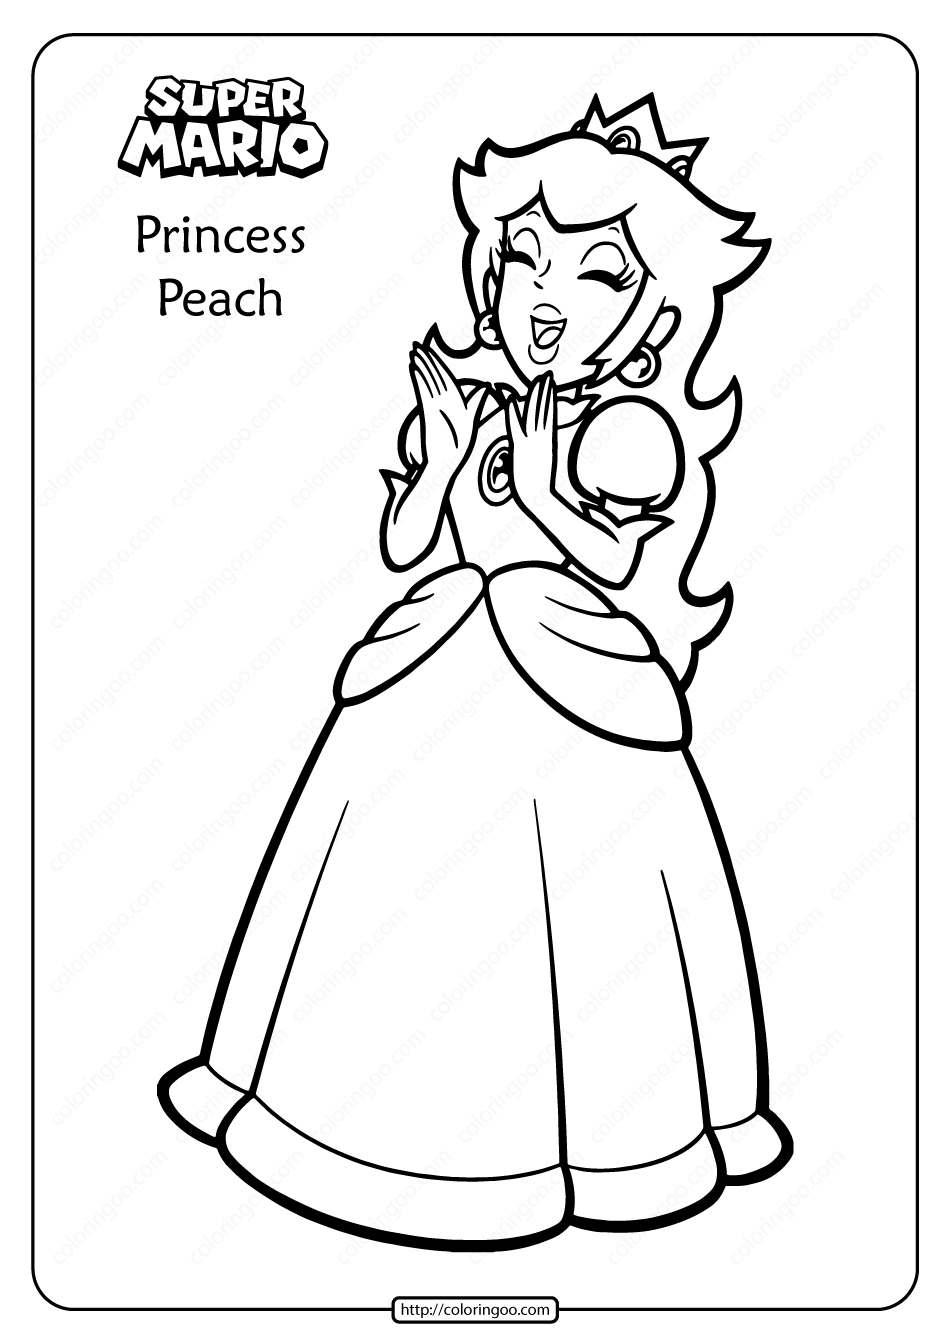 free} printable coloring page Princess Peach | Super mario ... | 1344x950